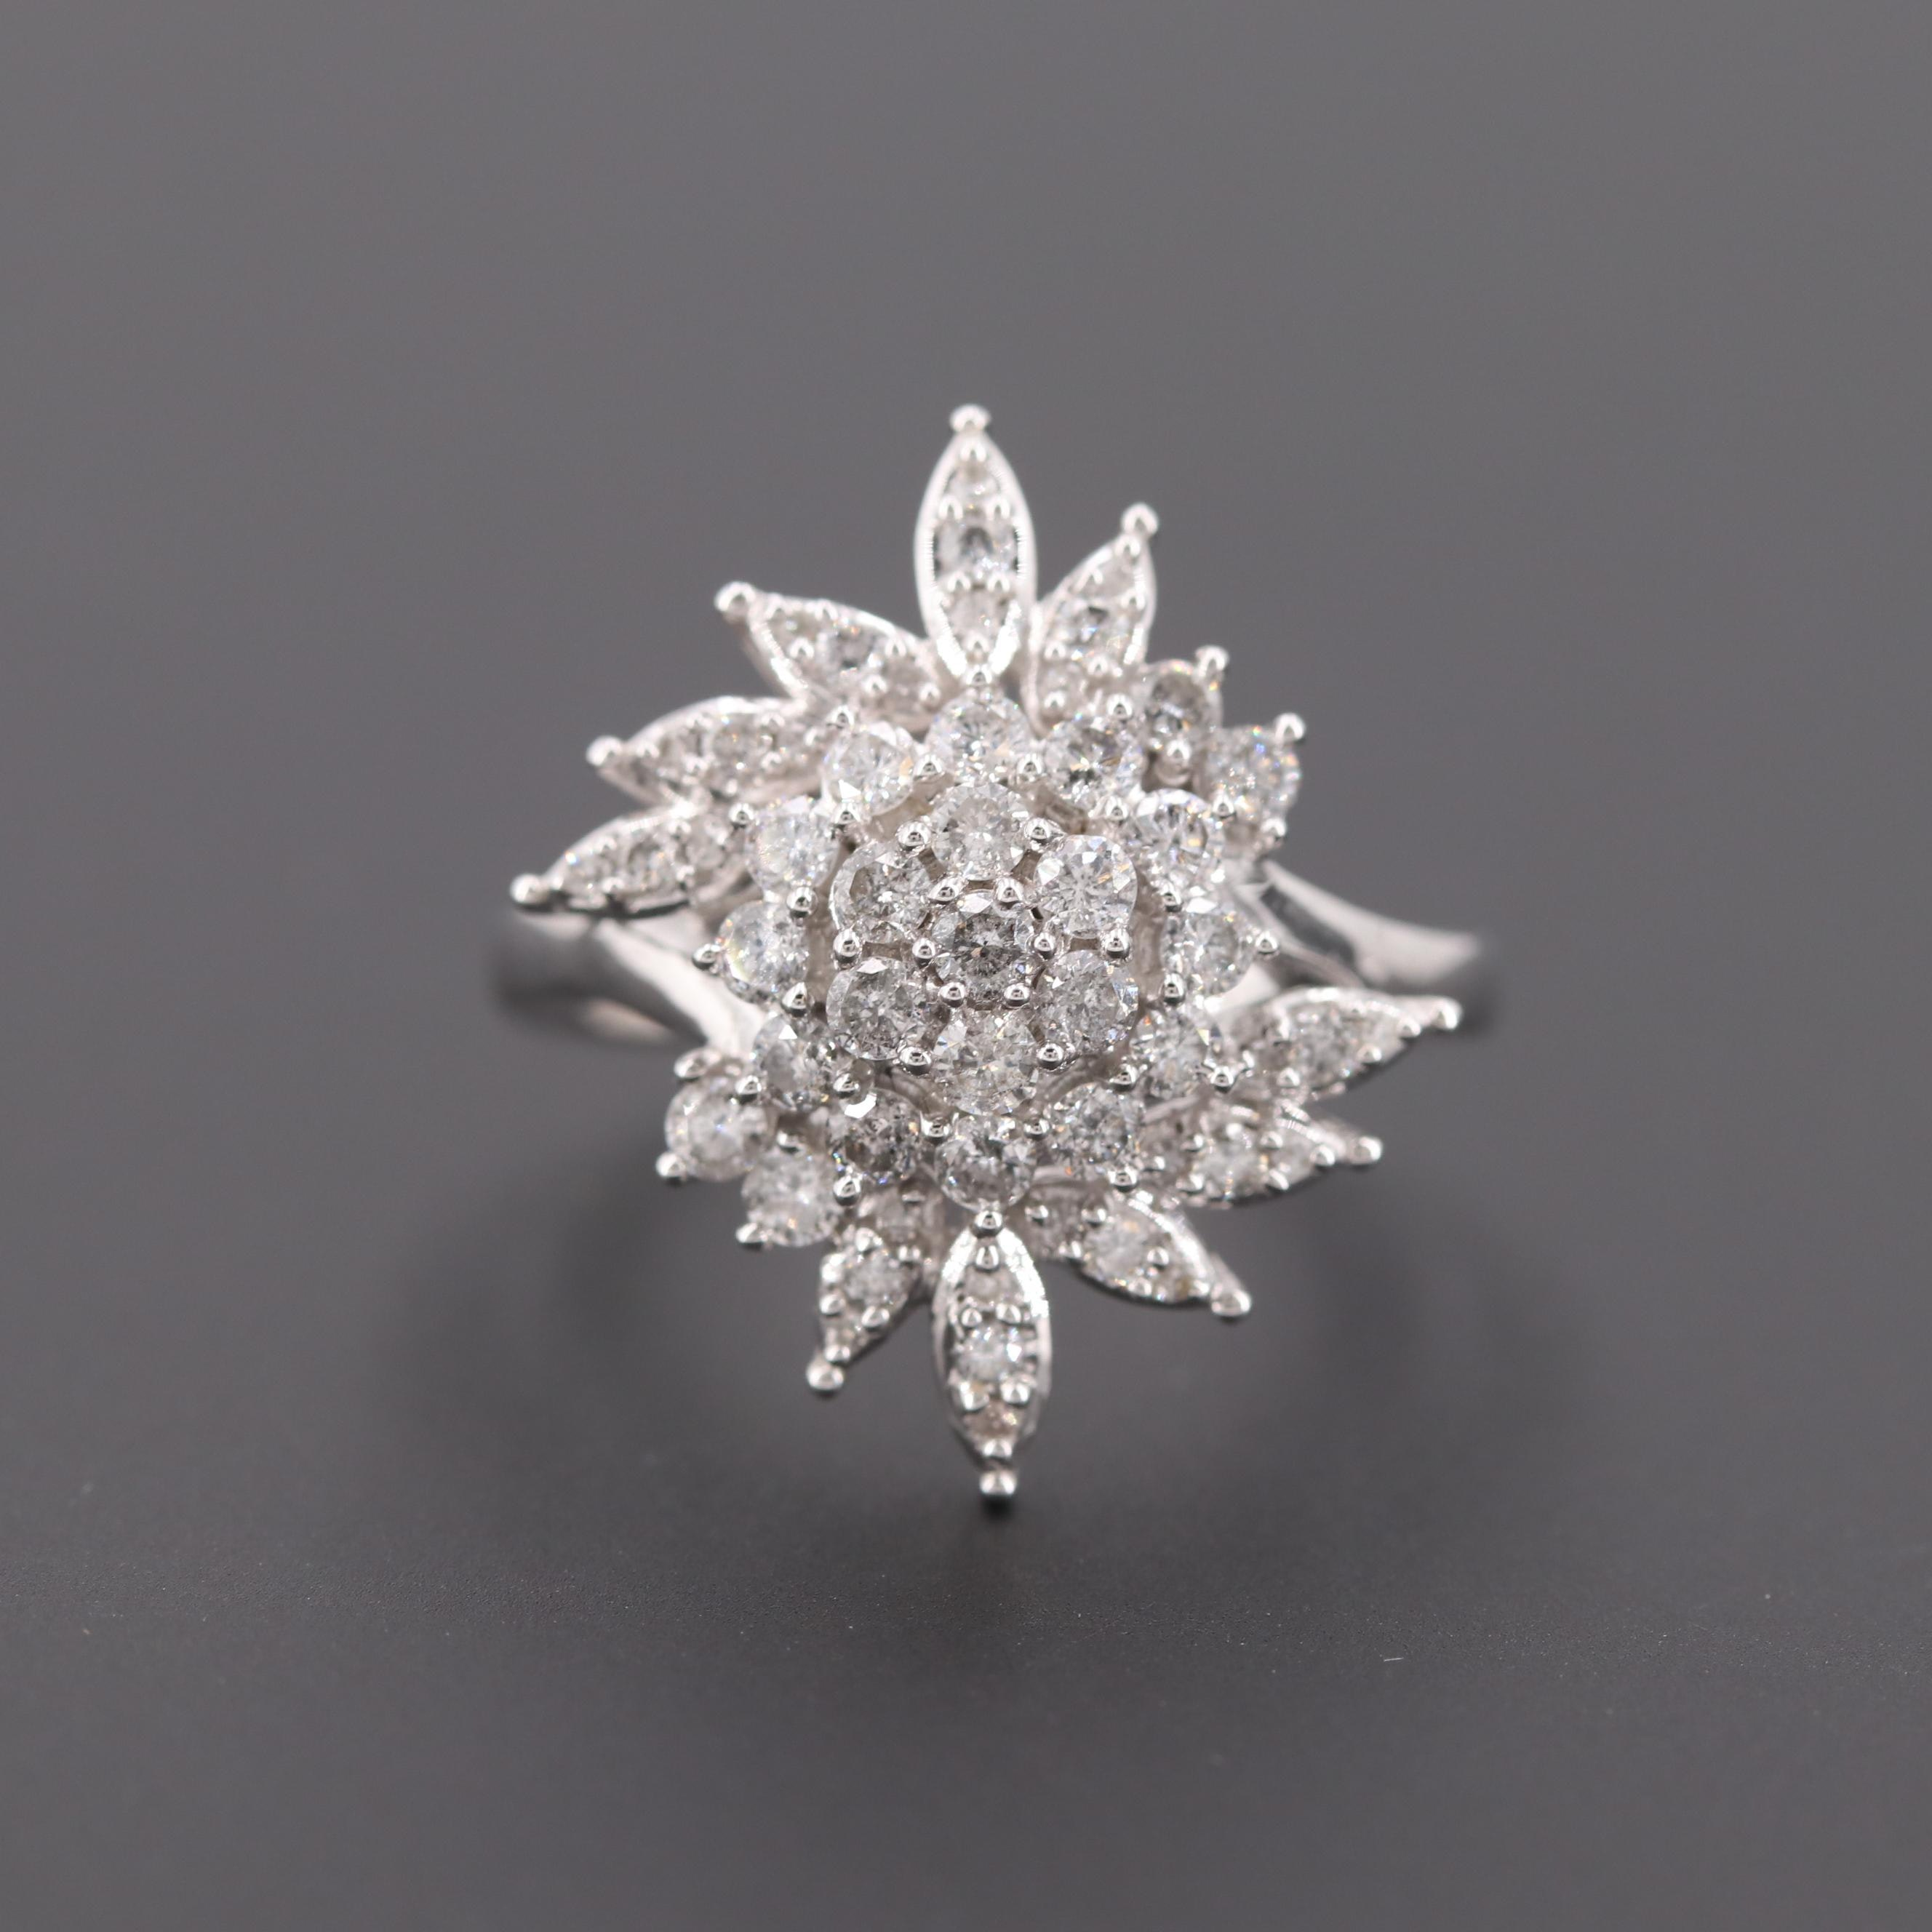 10K White Gold 1.27 CTW Diamond Cluster Ring